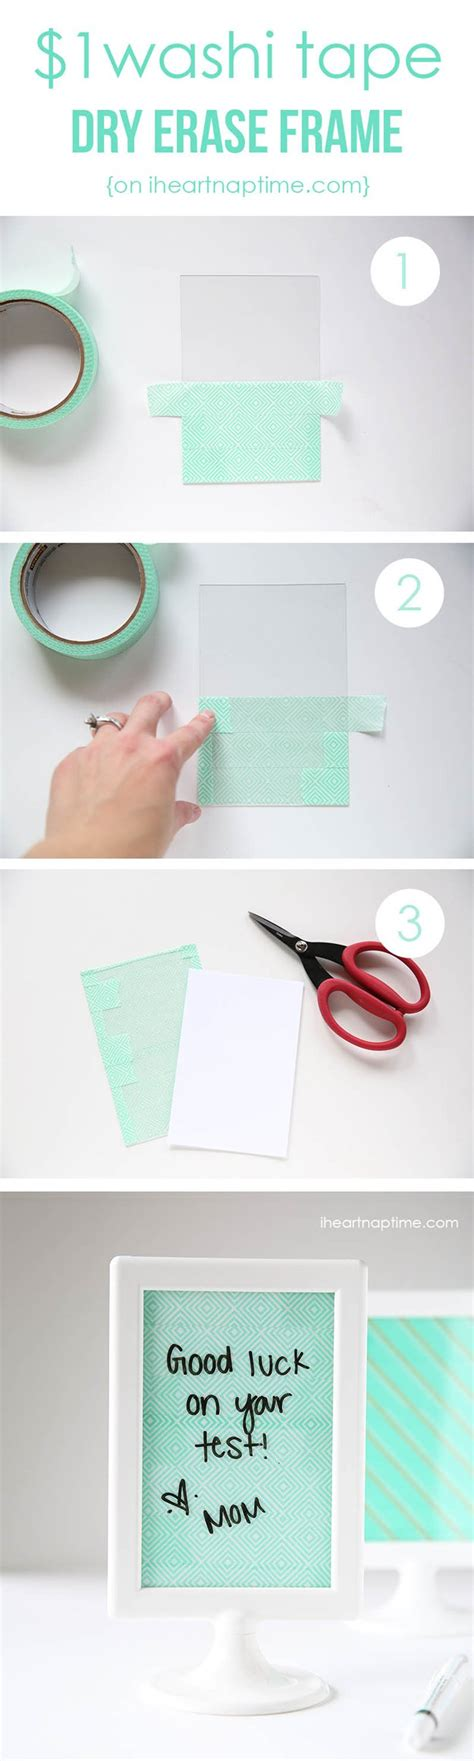 washi tape diy 100 creative ways to use washi tape diy crafts